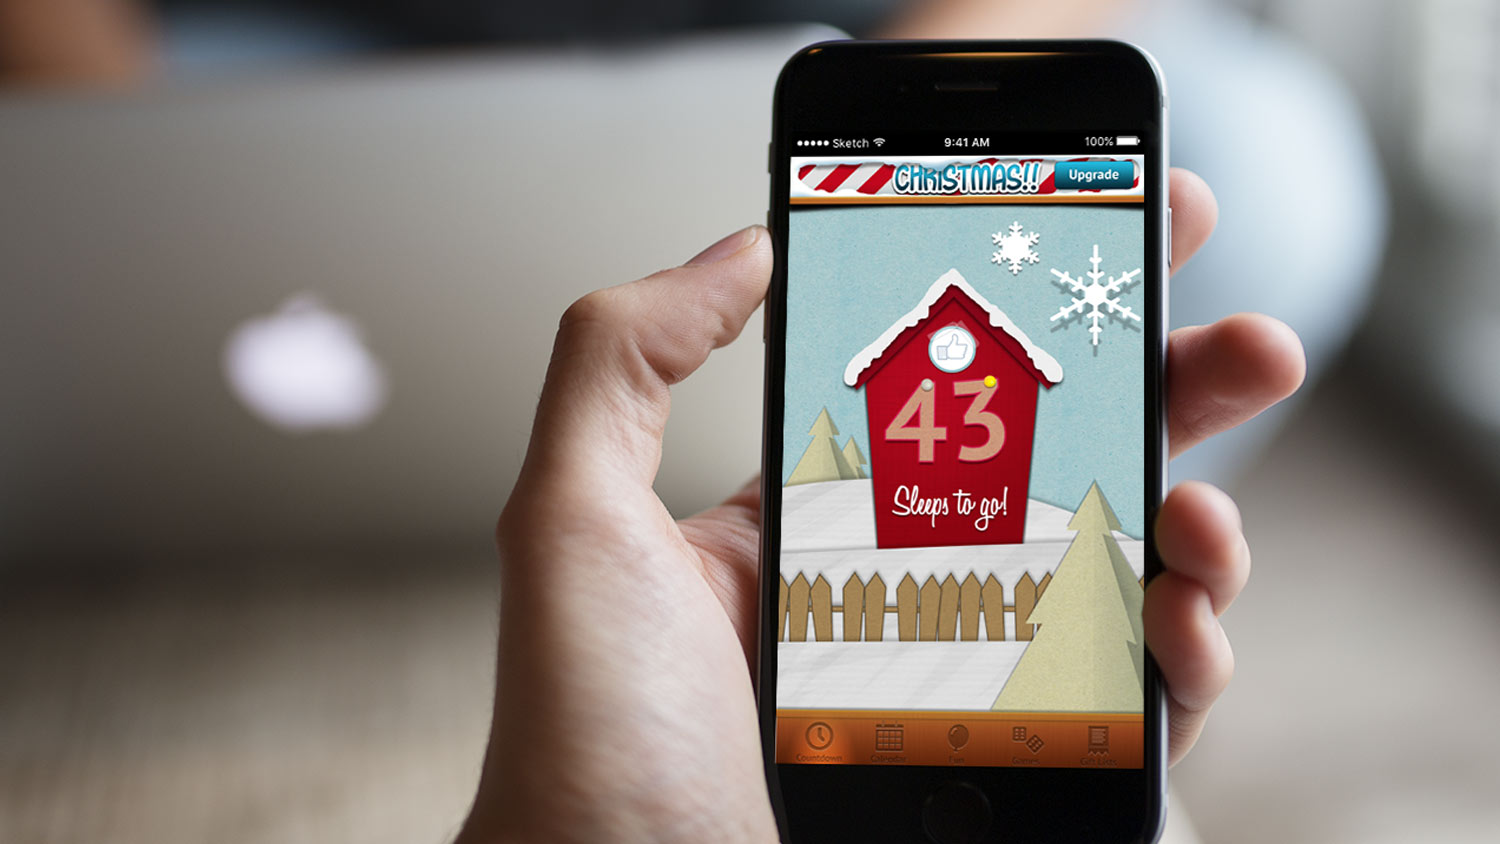 Christmas app for iphone, features a countdown of the number of sleeps until Christmas!